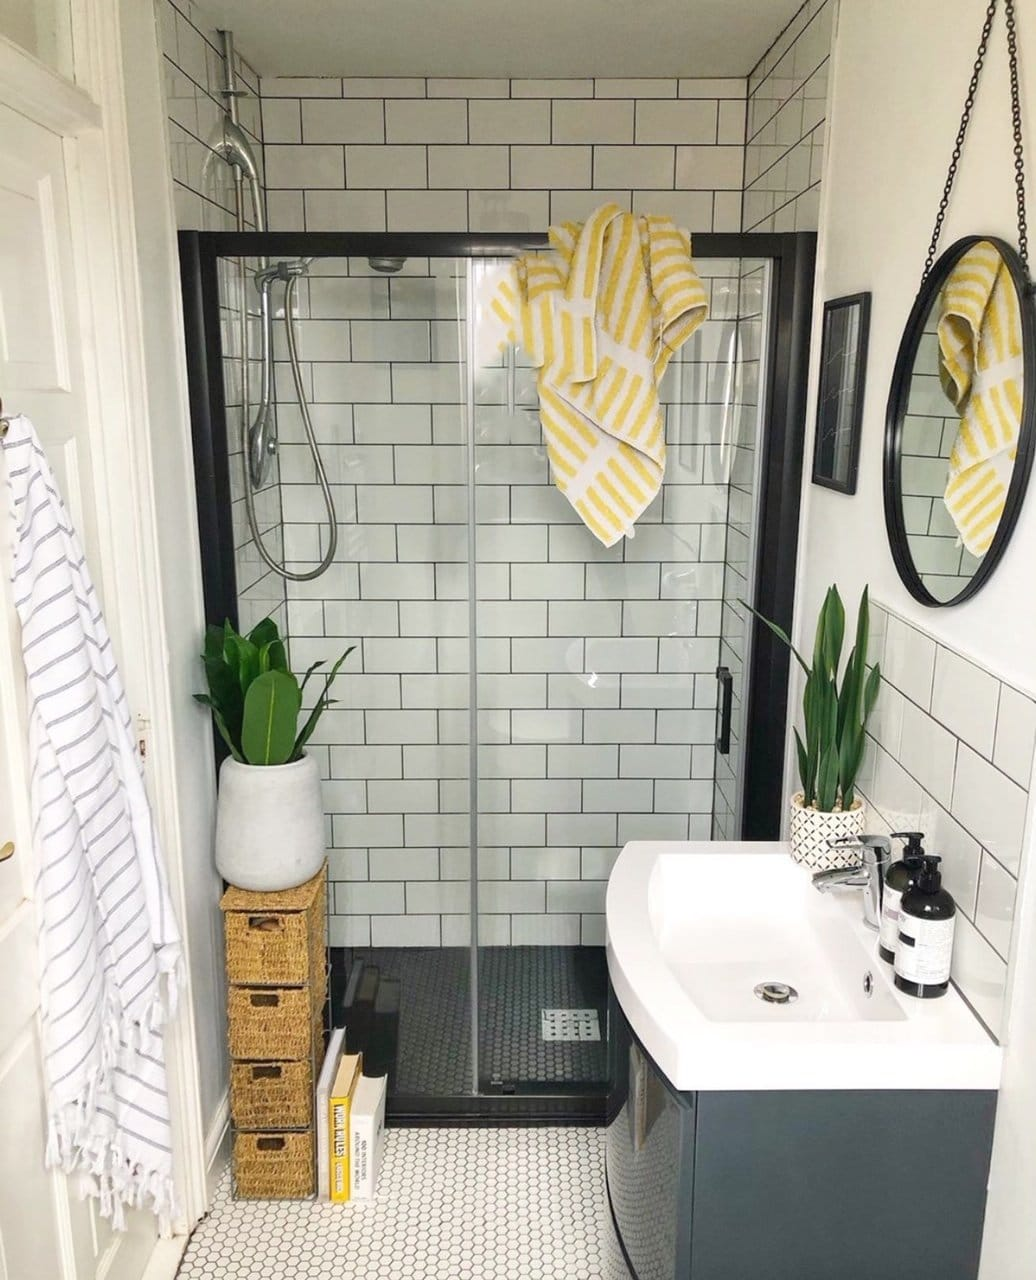 small bathroom, downstairs bathroom, shower room, en-suite, sink, shower, green walls, decorate, decorating, renovation, bathroom renovation